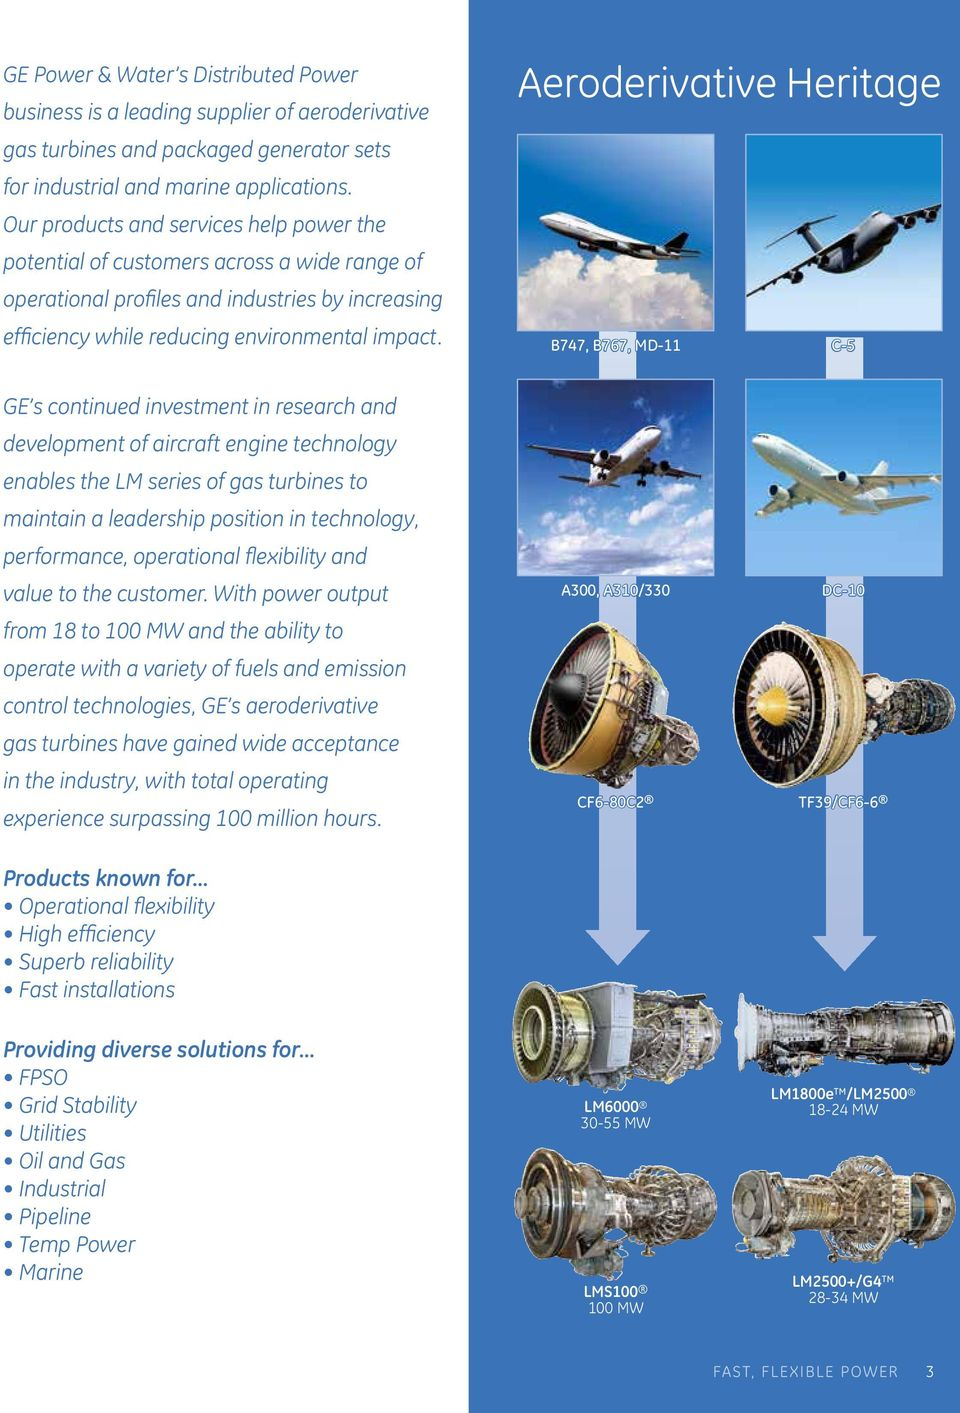 GE Power & Water Distributed Power  Fast, Flexible Power